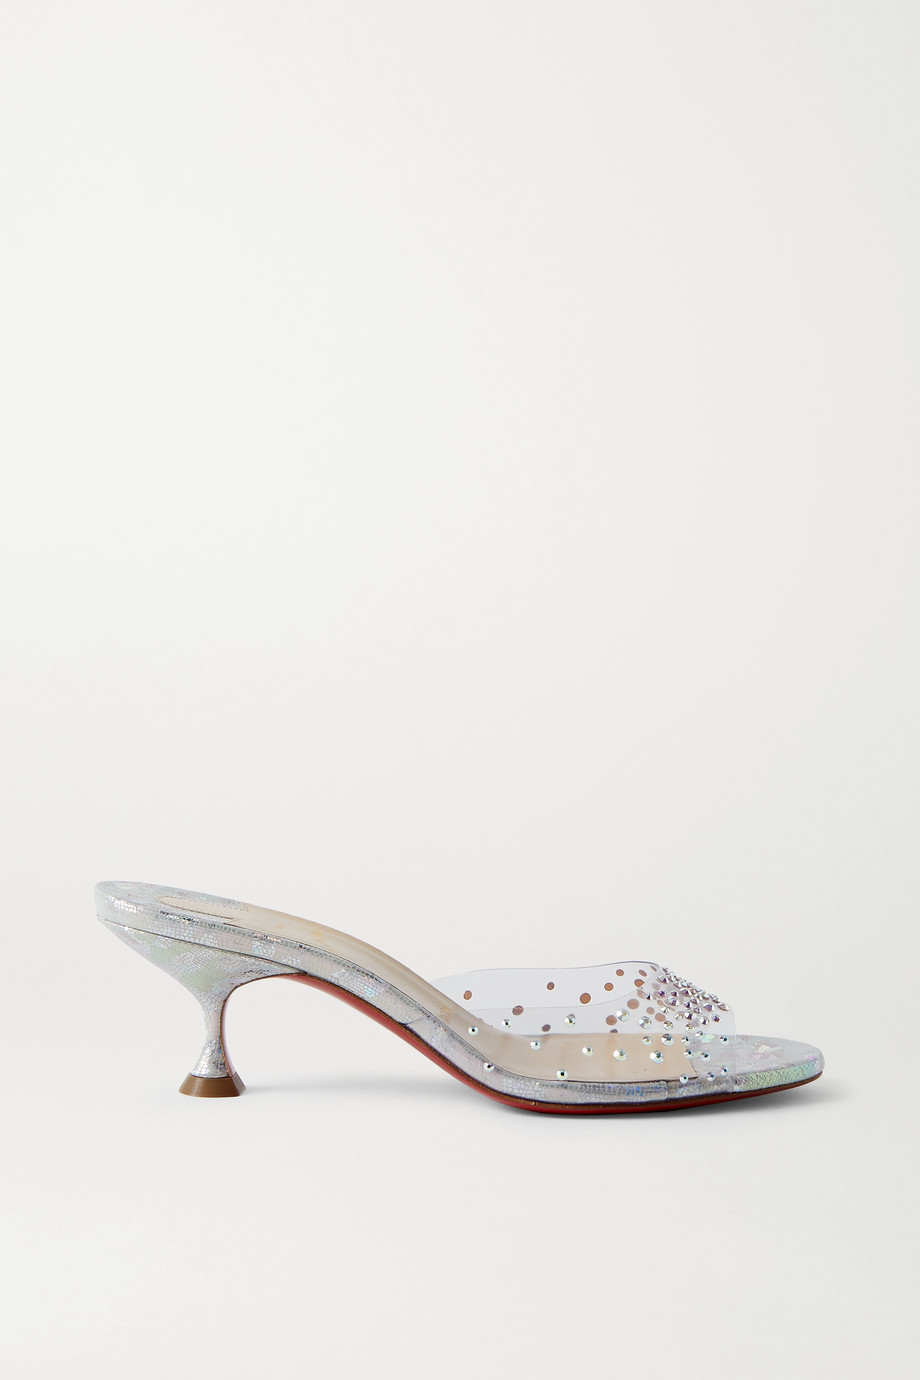 CHRISTIAN LOUBOUTIN Pailettacan 55 crystal-embellished PVC and iridescent snake-effect leather mules